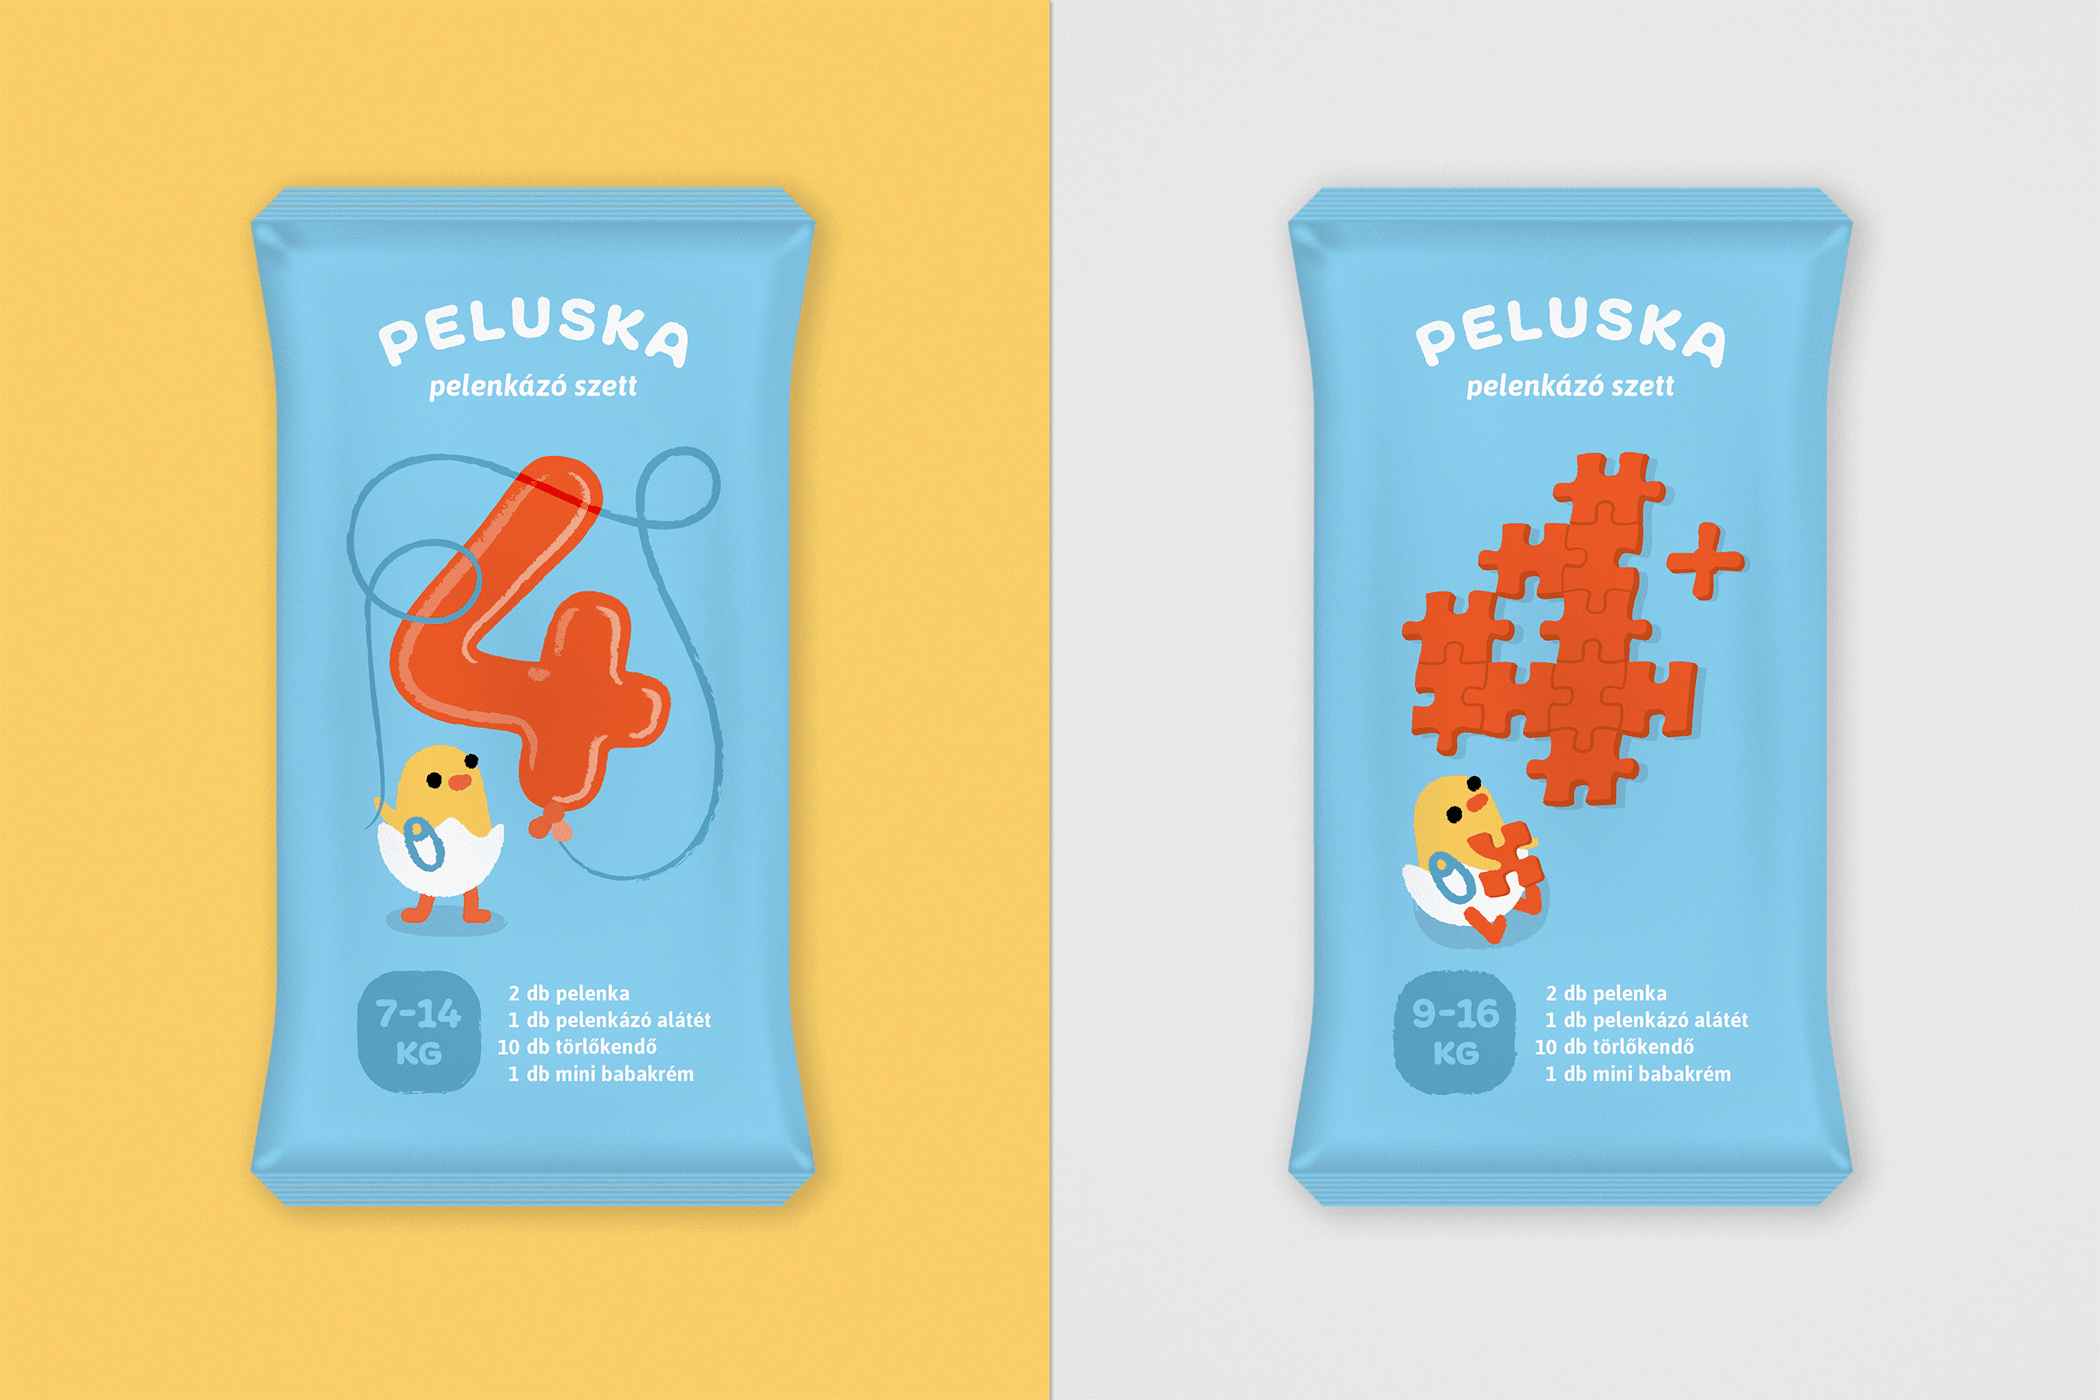 Diaper packaging for 4 and 4+